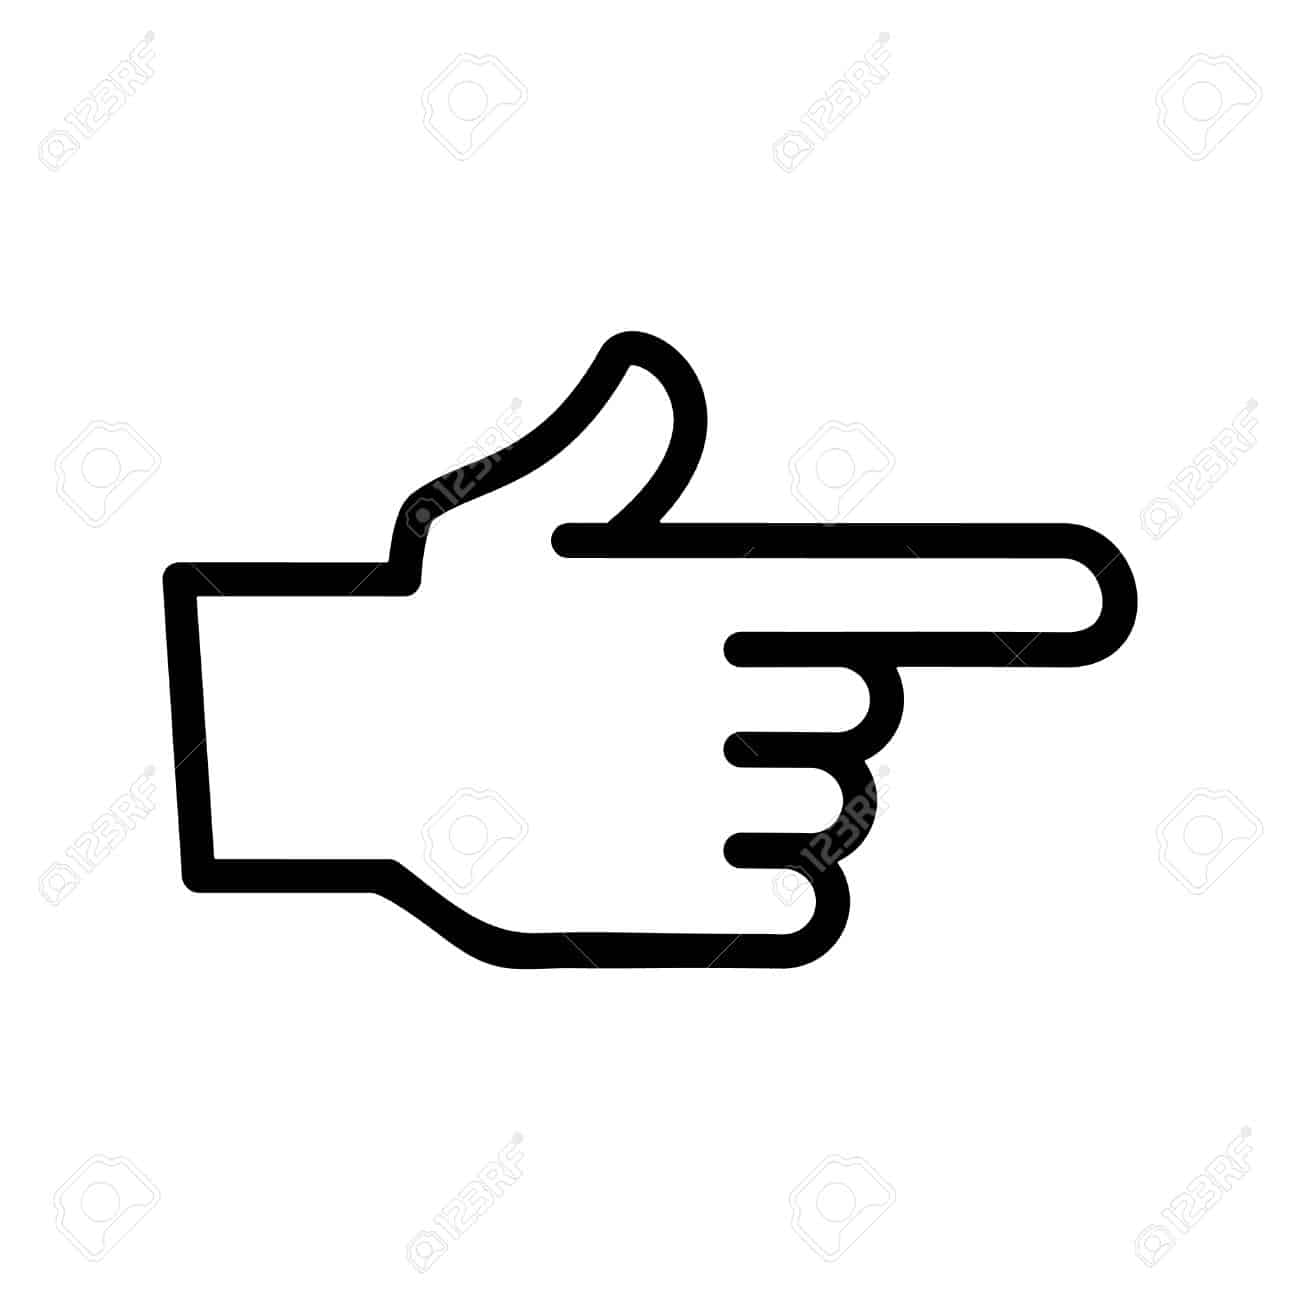 49650600-Finger-Point-Vector-Icon-Stock-Vector-finger